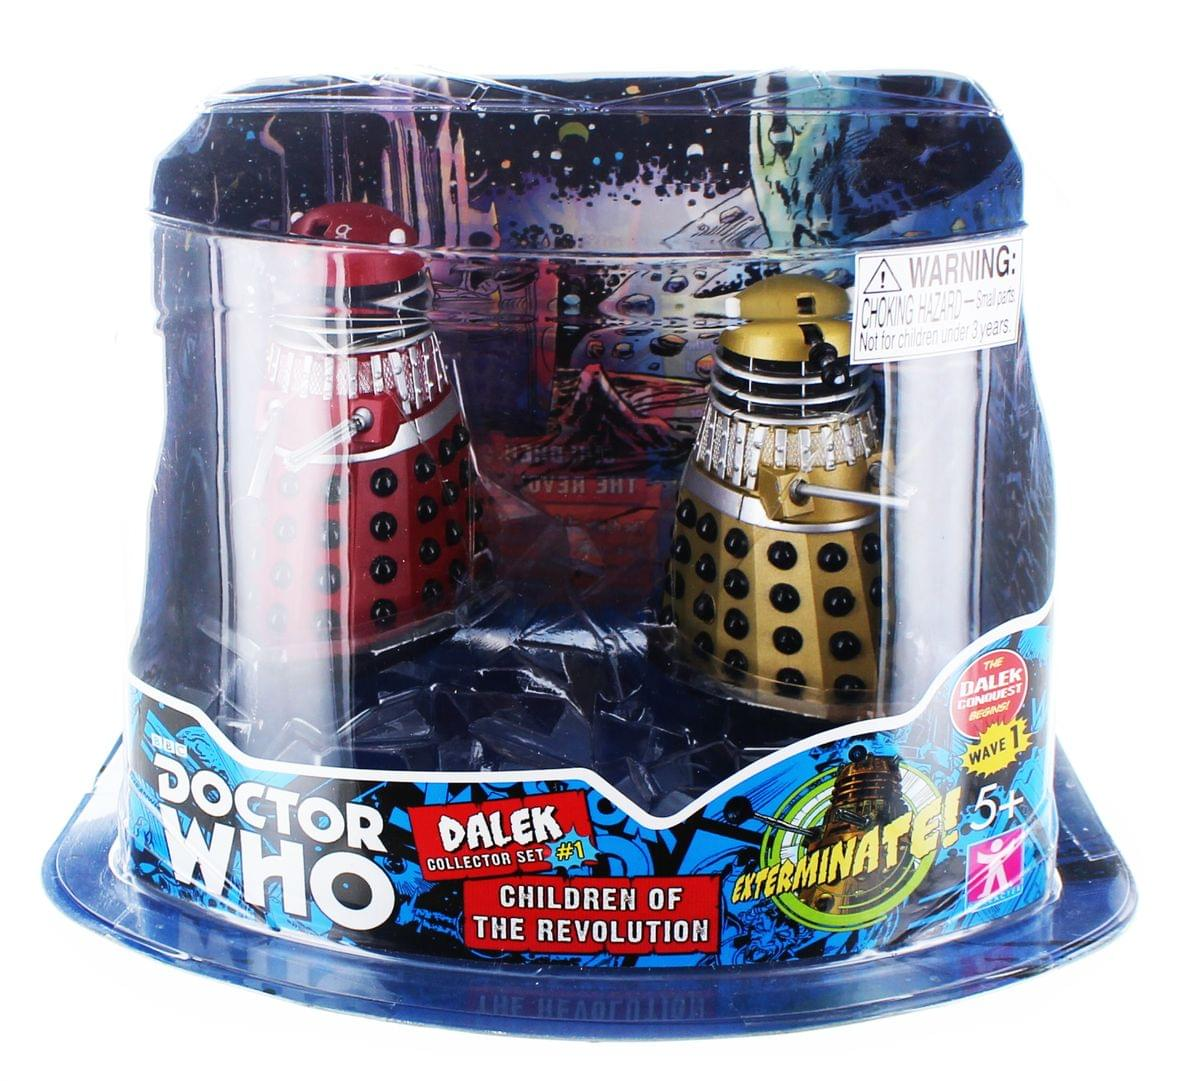 "Doctor Who 3.75"" Action Figure Set #1: ''Children of the Revolution''"